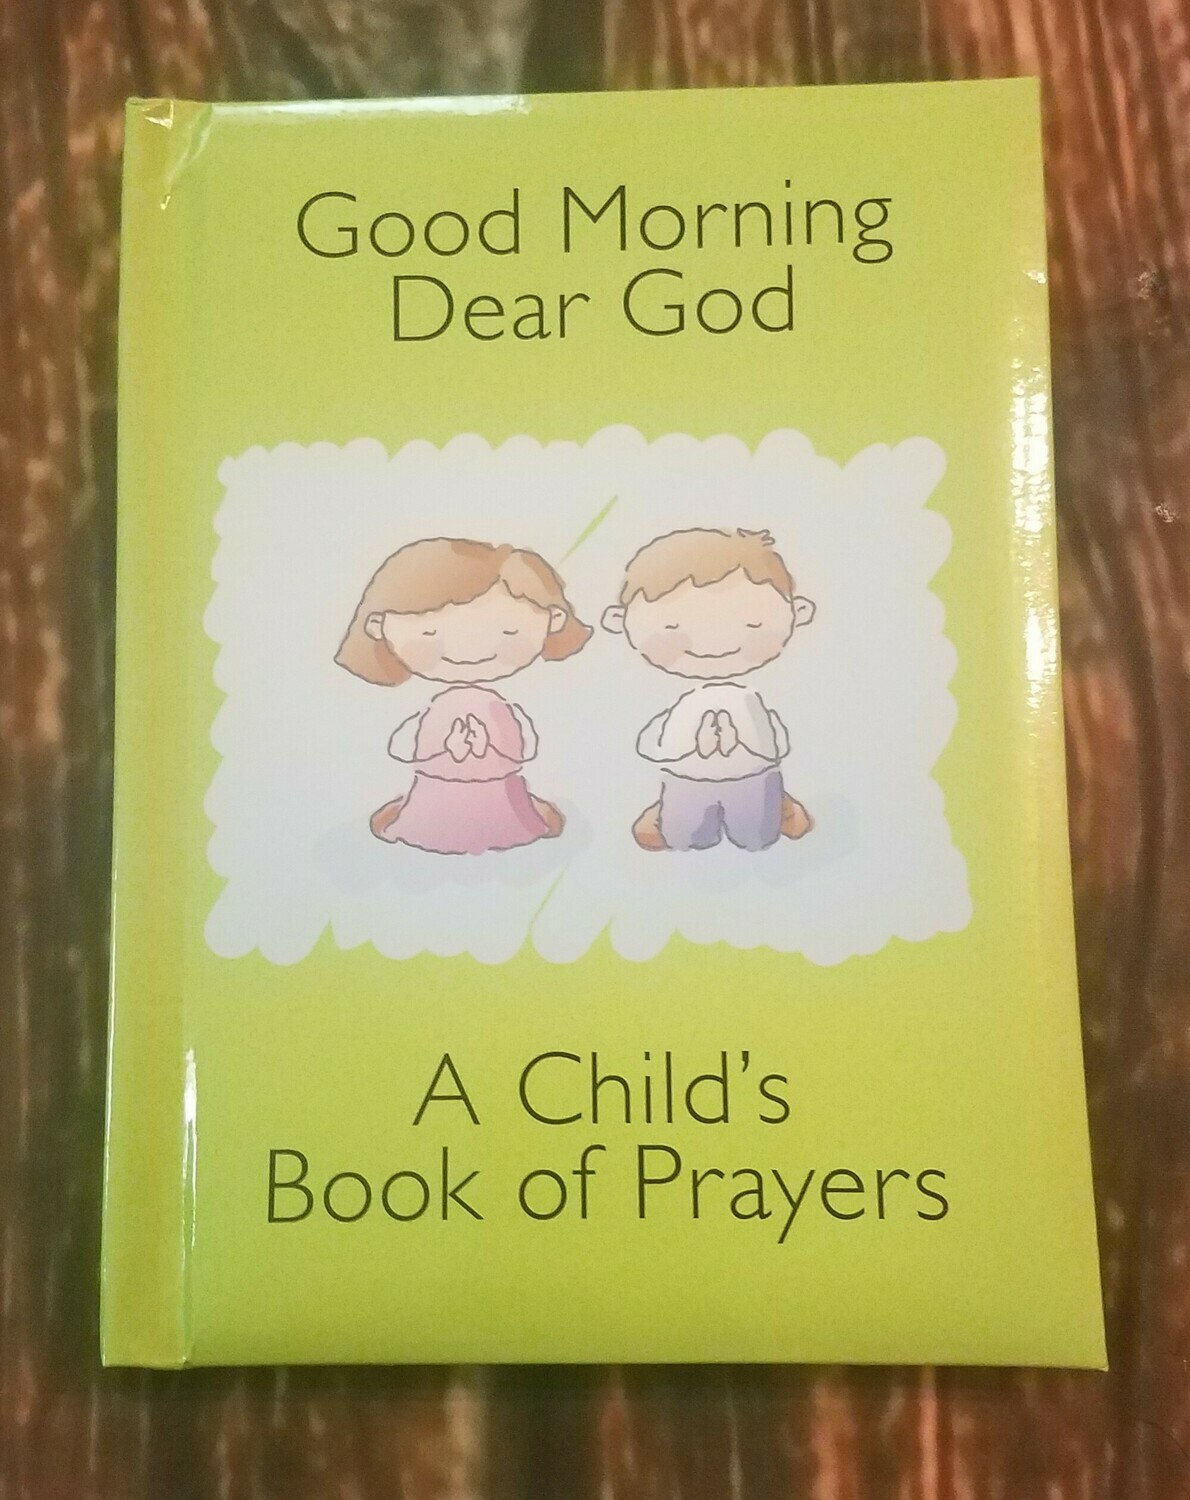 Good Morning Dear God: A Child's Book of Prayers by Flowerpot Press